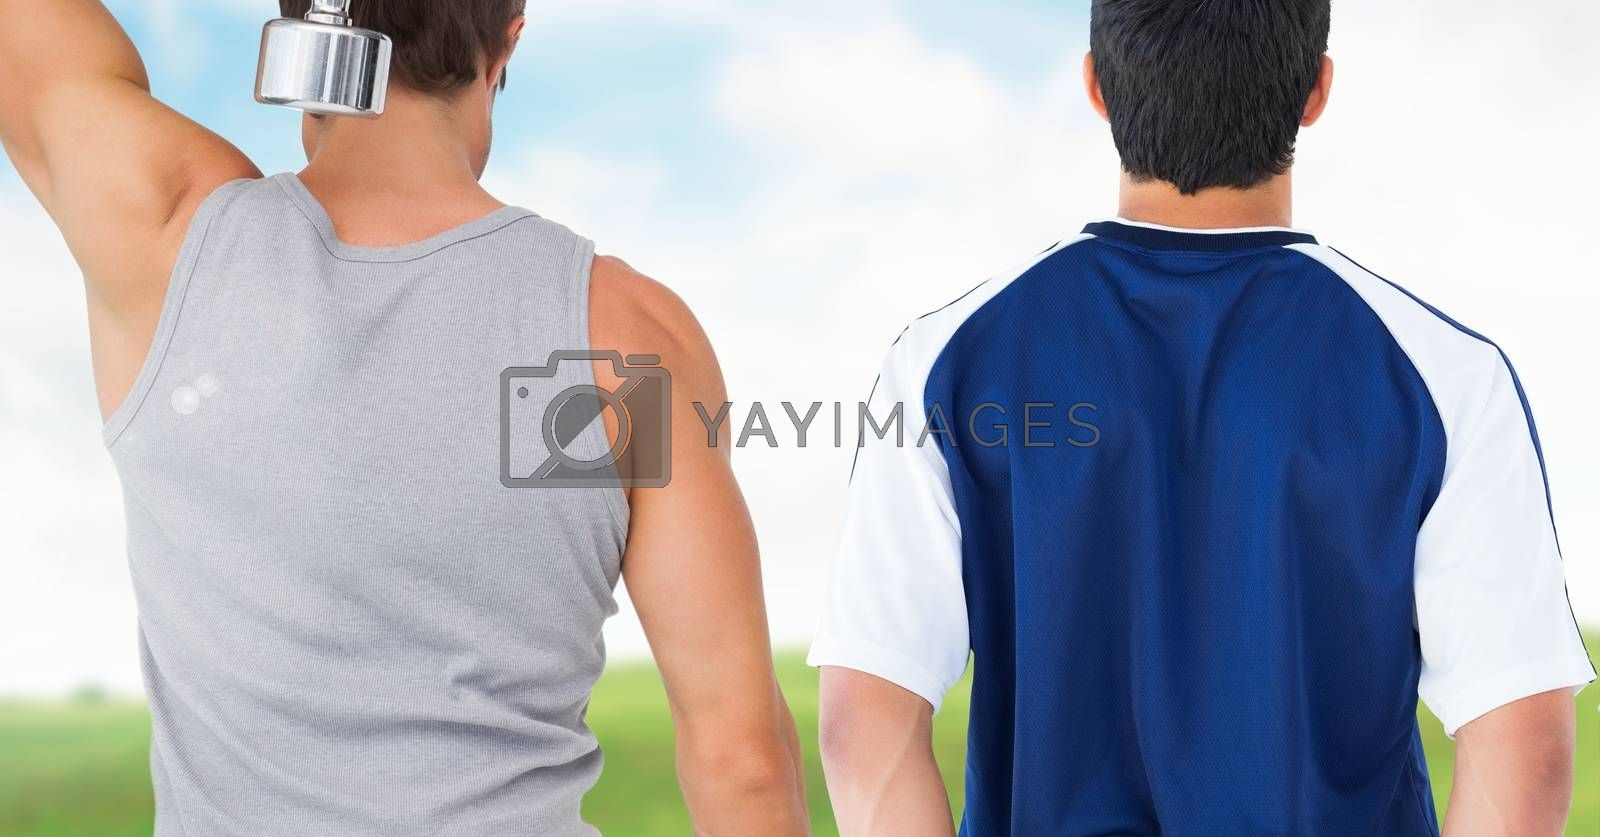 Fitness men back making fitness exercises against countryside background by Wavebreakmedia